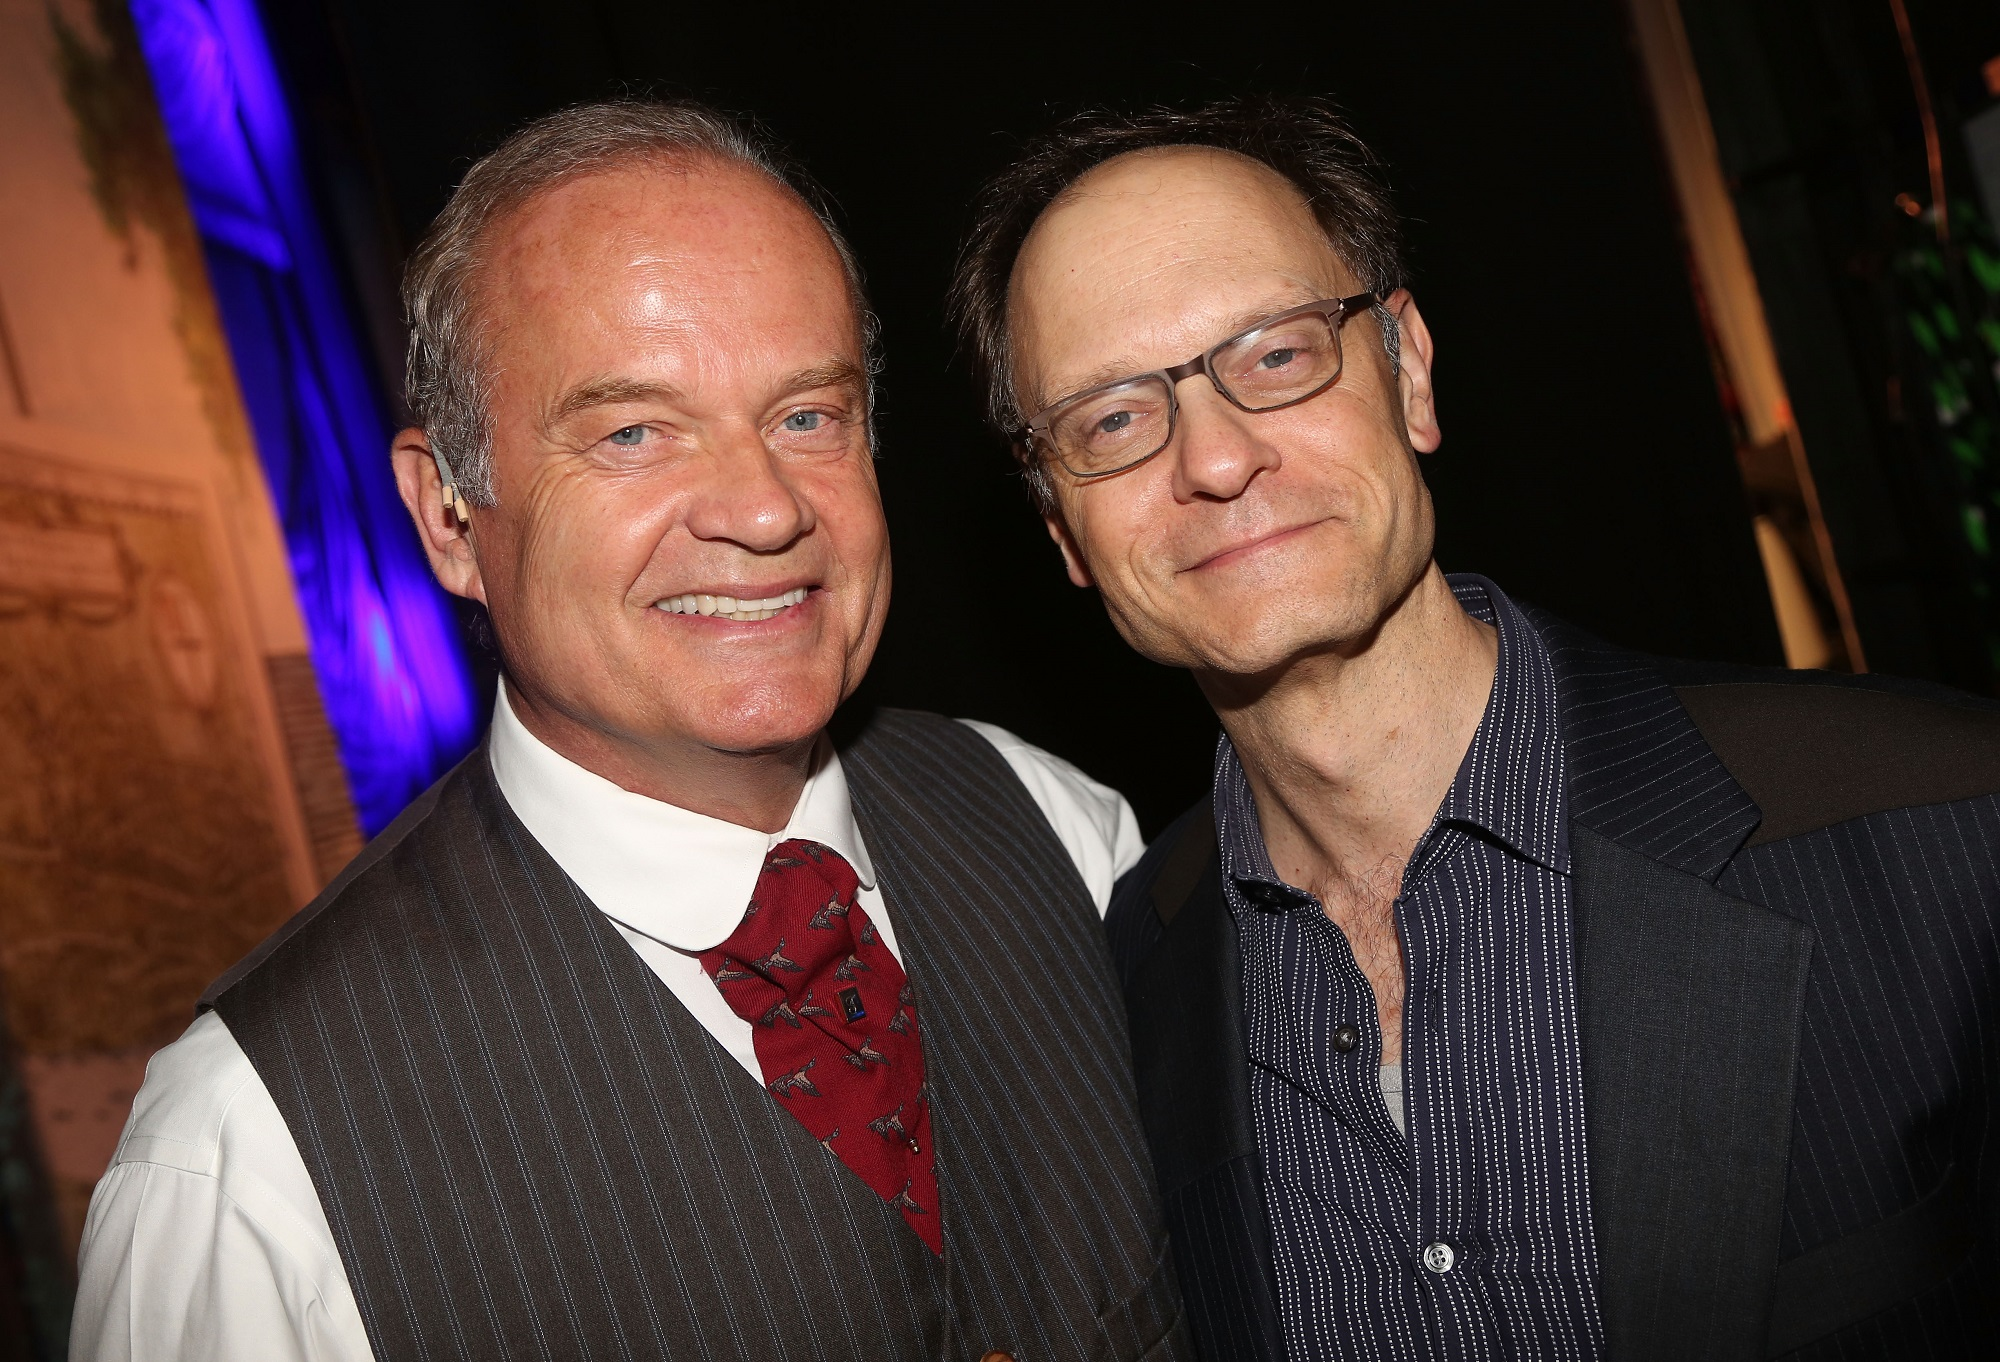 Kelsey Grammer and David Hyde Pierce of Frasier